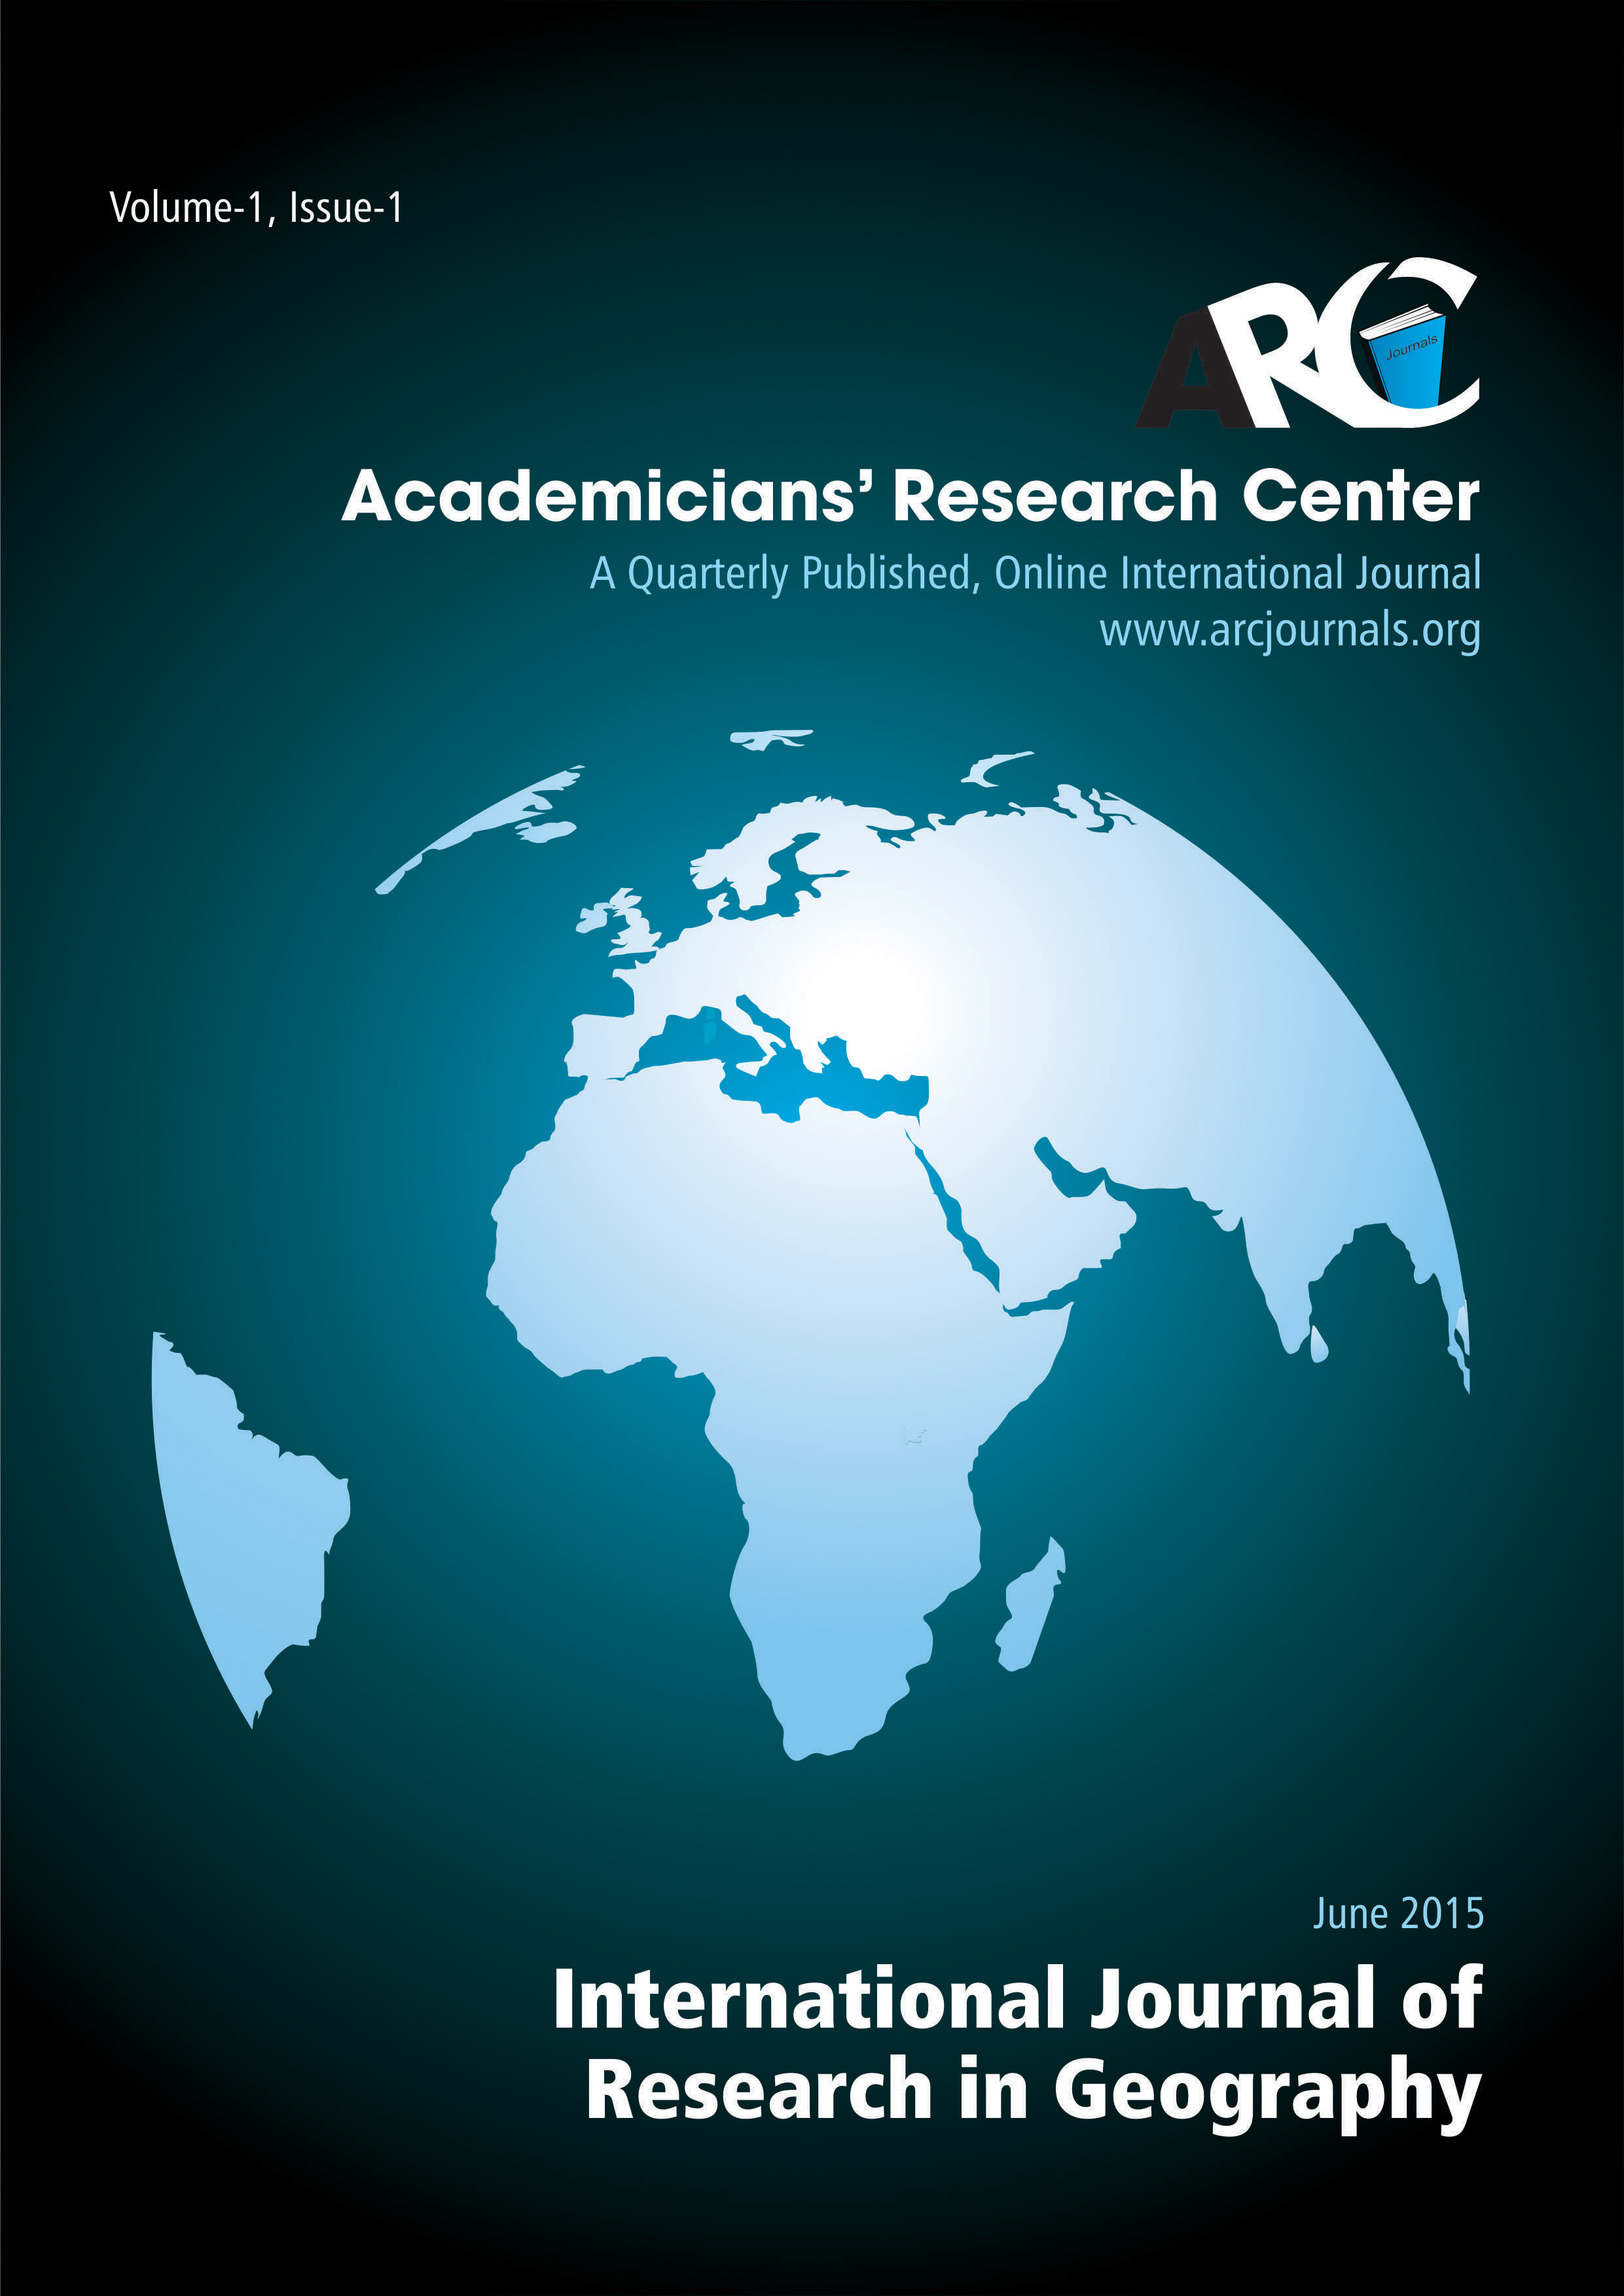 global management research paper Paper must be original/non-plagiarized work, using verifiable referencesthe textbook and the video in this module discuss the value of effective collaborative.